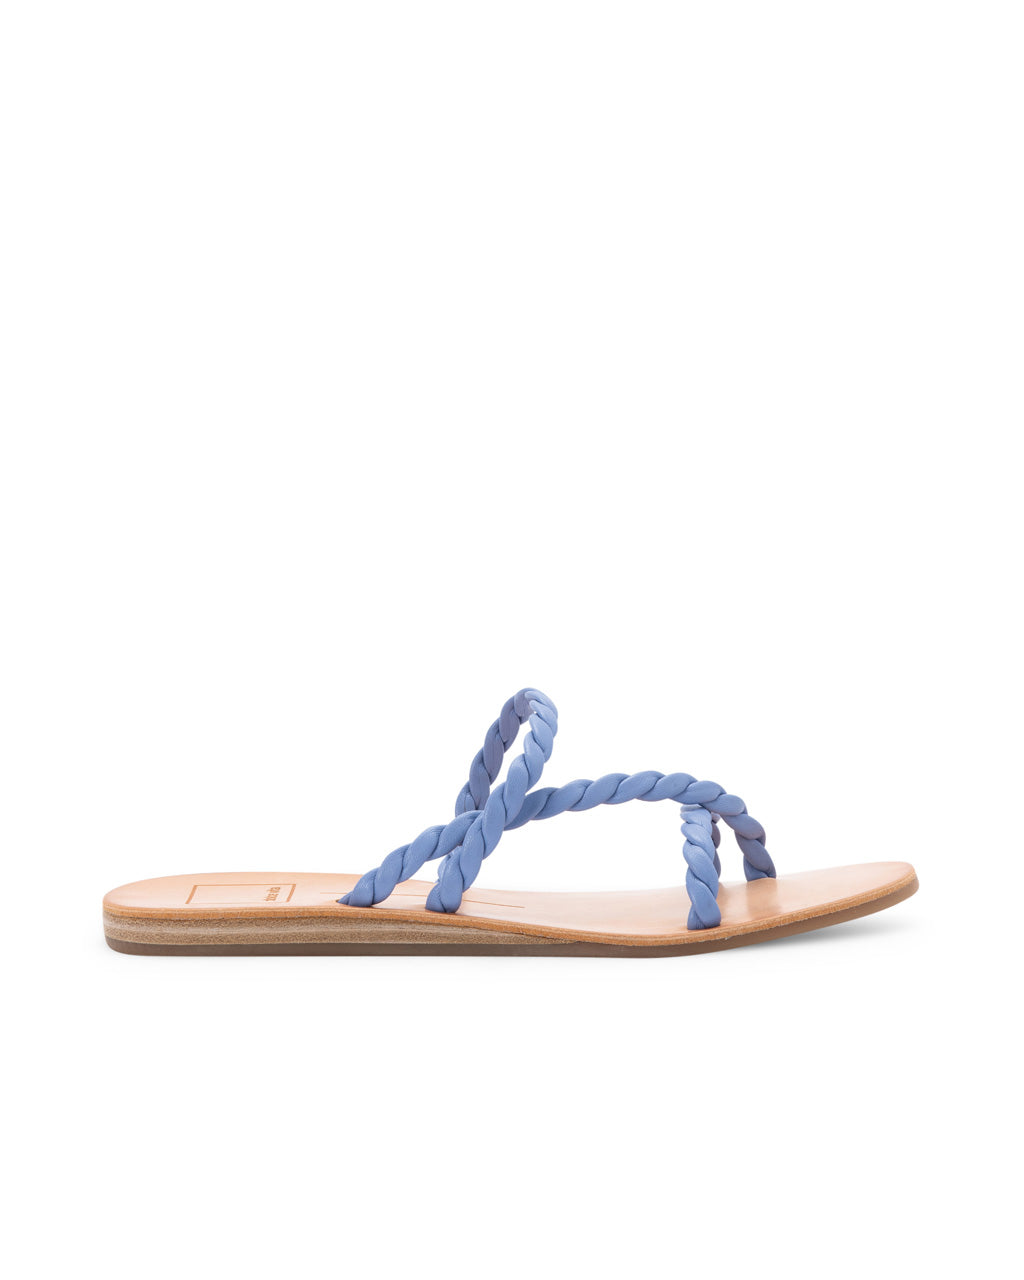 side view of flat sandal with brown leather sole and blue braided straps